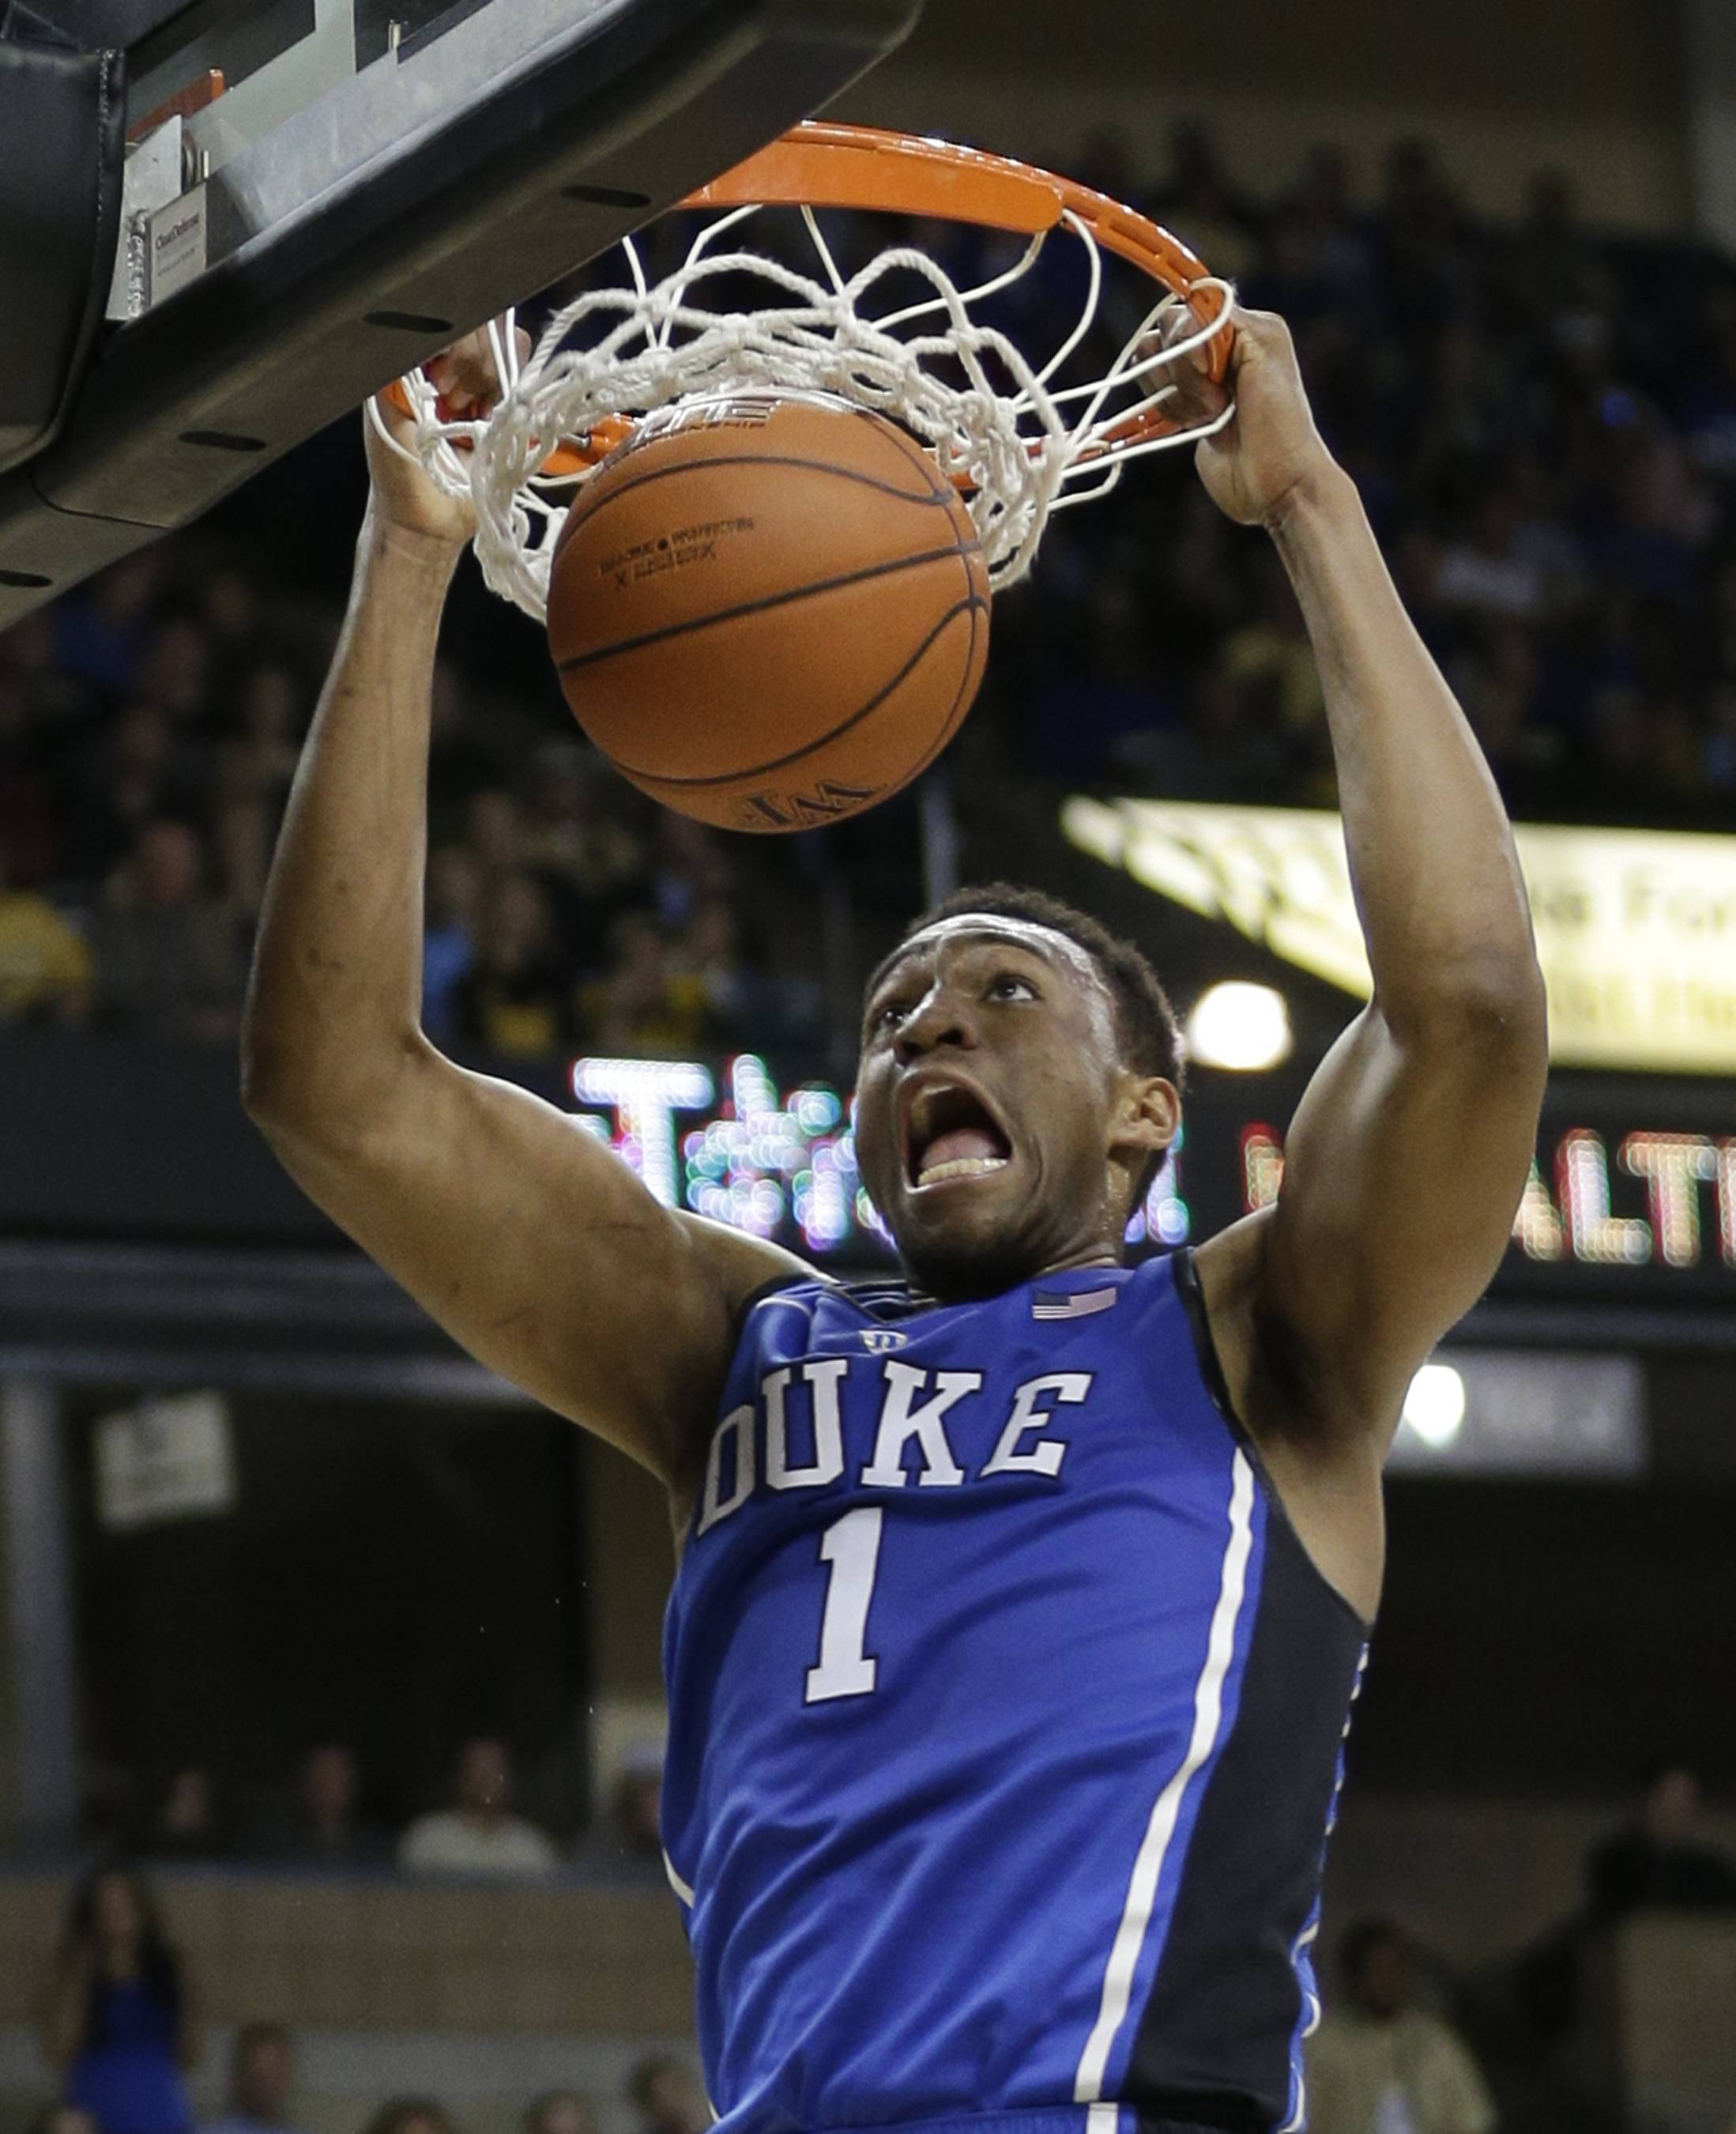 FILE - In this March 5, 2014 film photo, Duke's Jabari Parker (1)  dunks against Wake Forest during the second half of an NCAA college basketball game in Winston-Salem, N.C. Parker is a possible pick in the 2014 NBA Draft, Thursday, June 26, 2014 in New York.